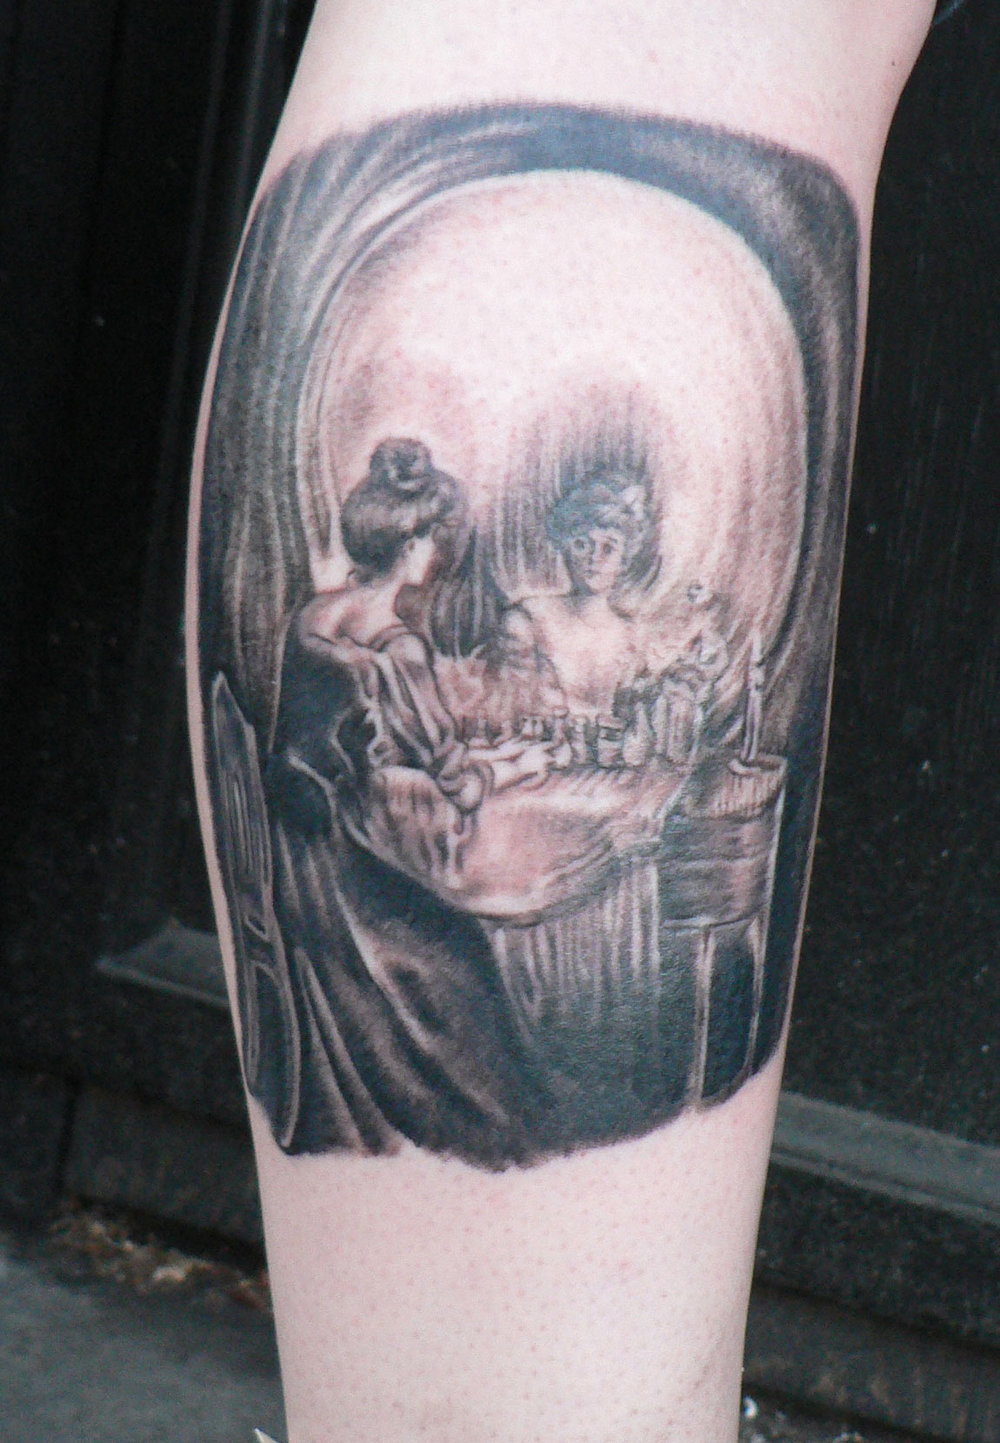 Black and Grey 'Vanity' Skull Tattoo, (fresh)